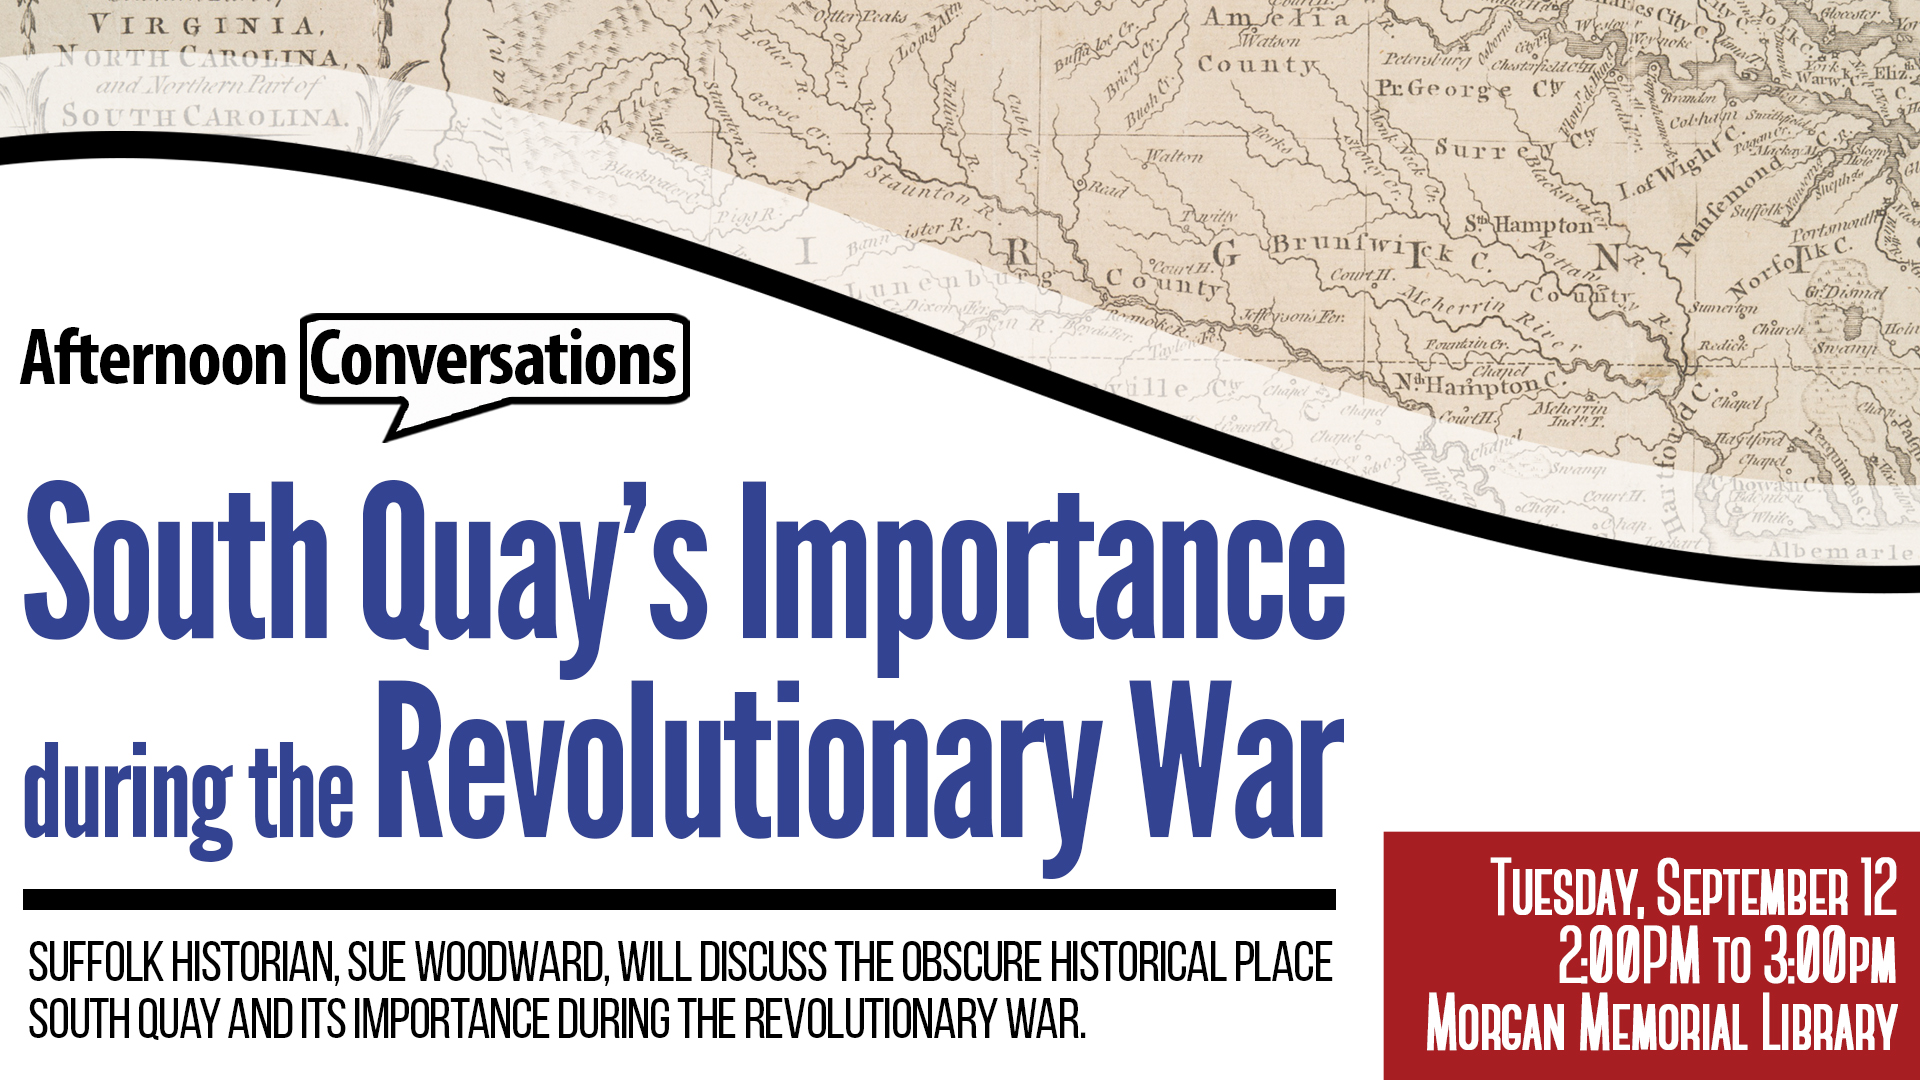 Afternoon Conversations: South Quay and its Importance During the Revolutionary War